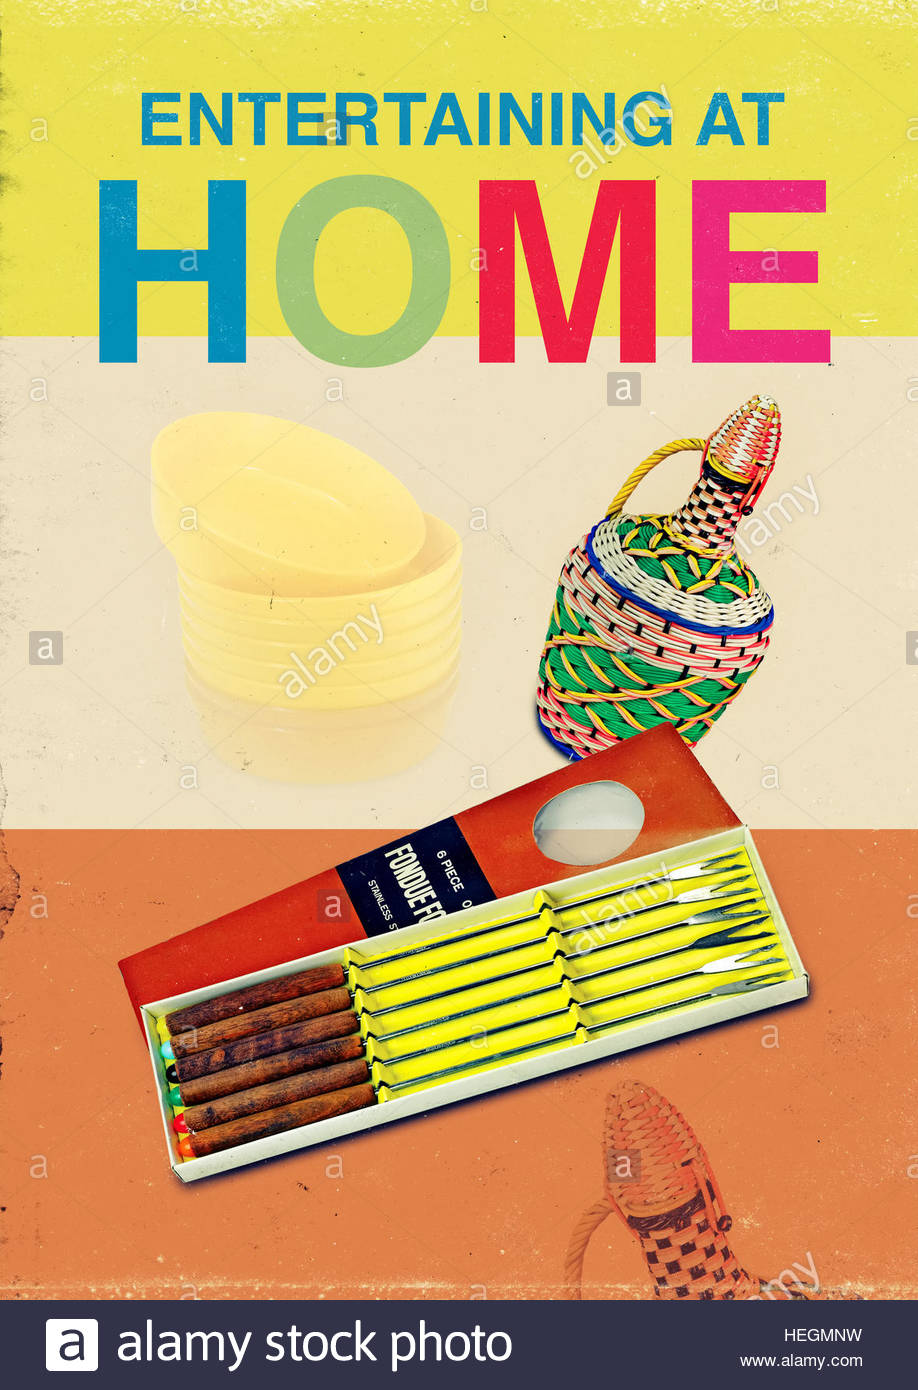 Entertaining home mid century retro kitsch vintage lifestyle - Stock Image